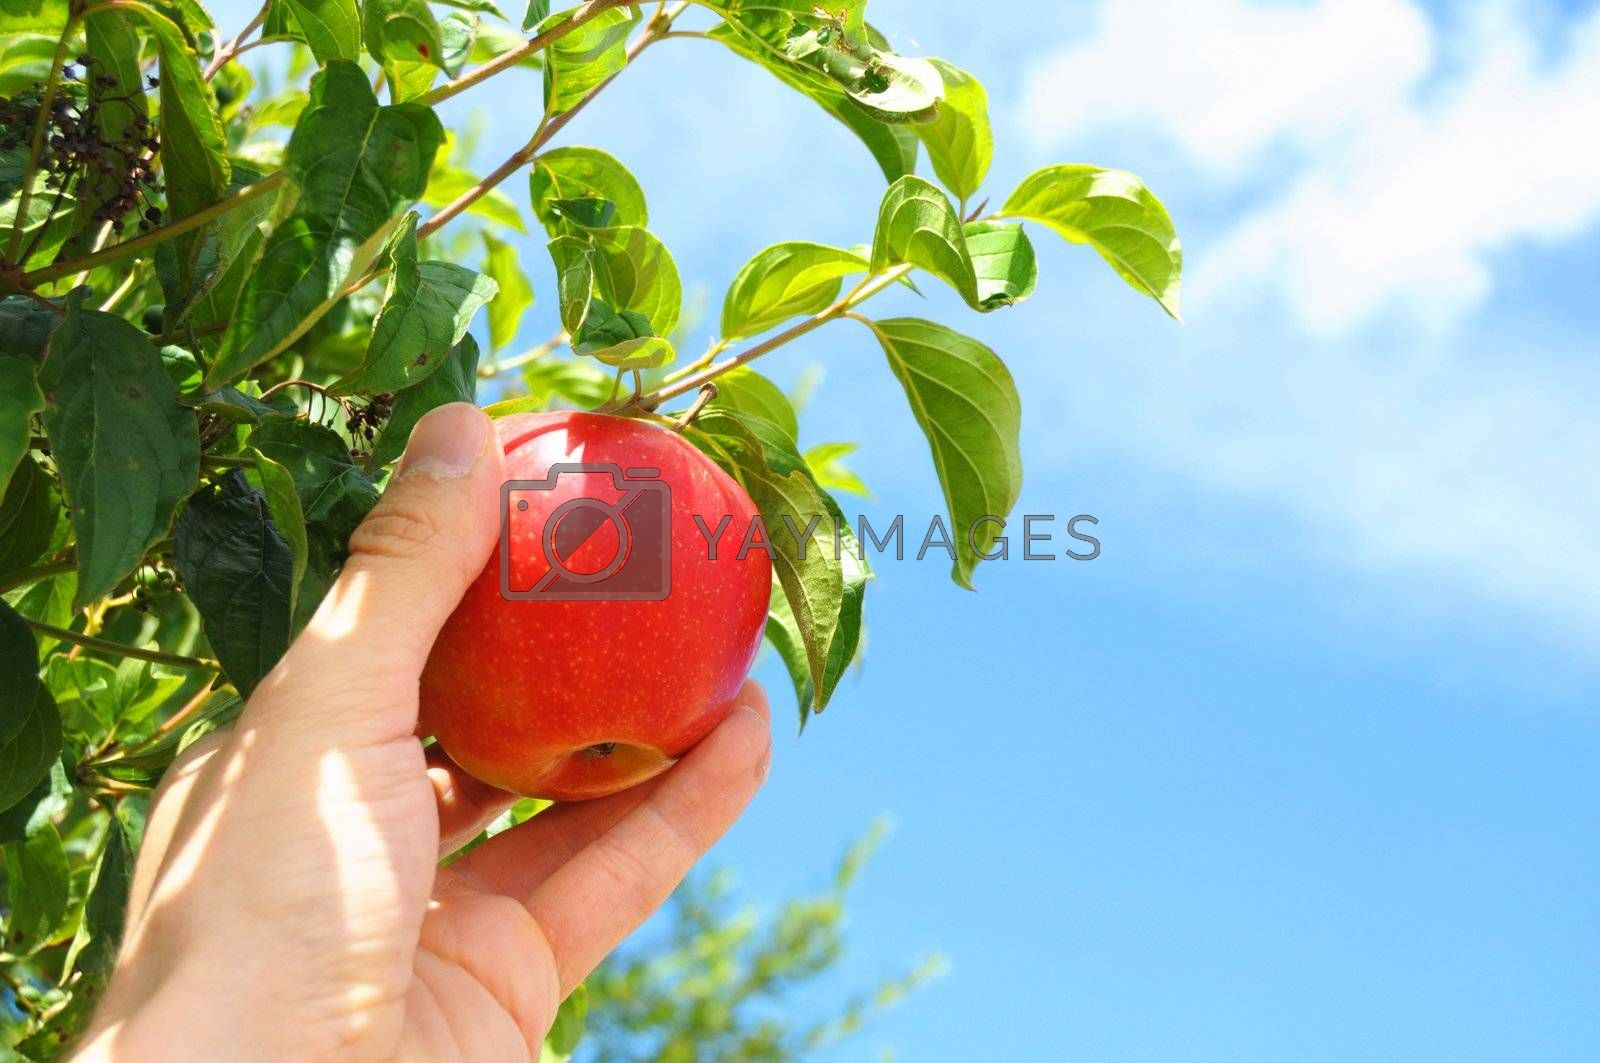 Royalty free image of apple by gunnar3000